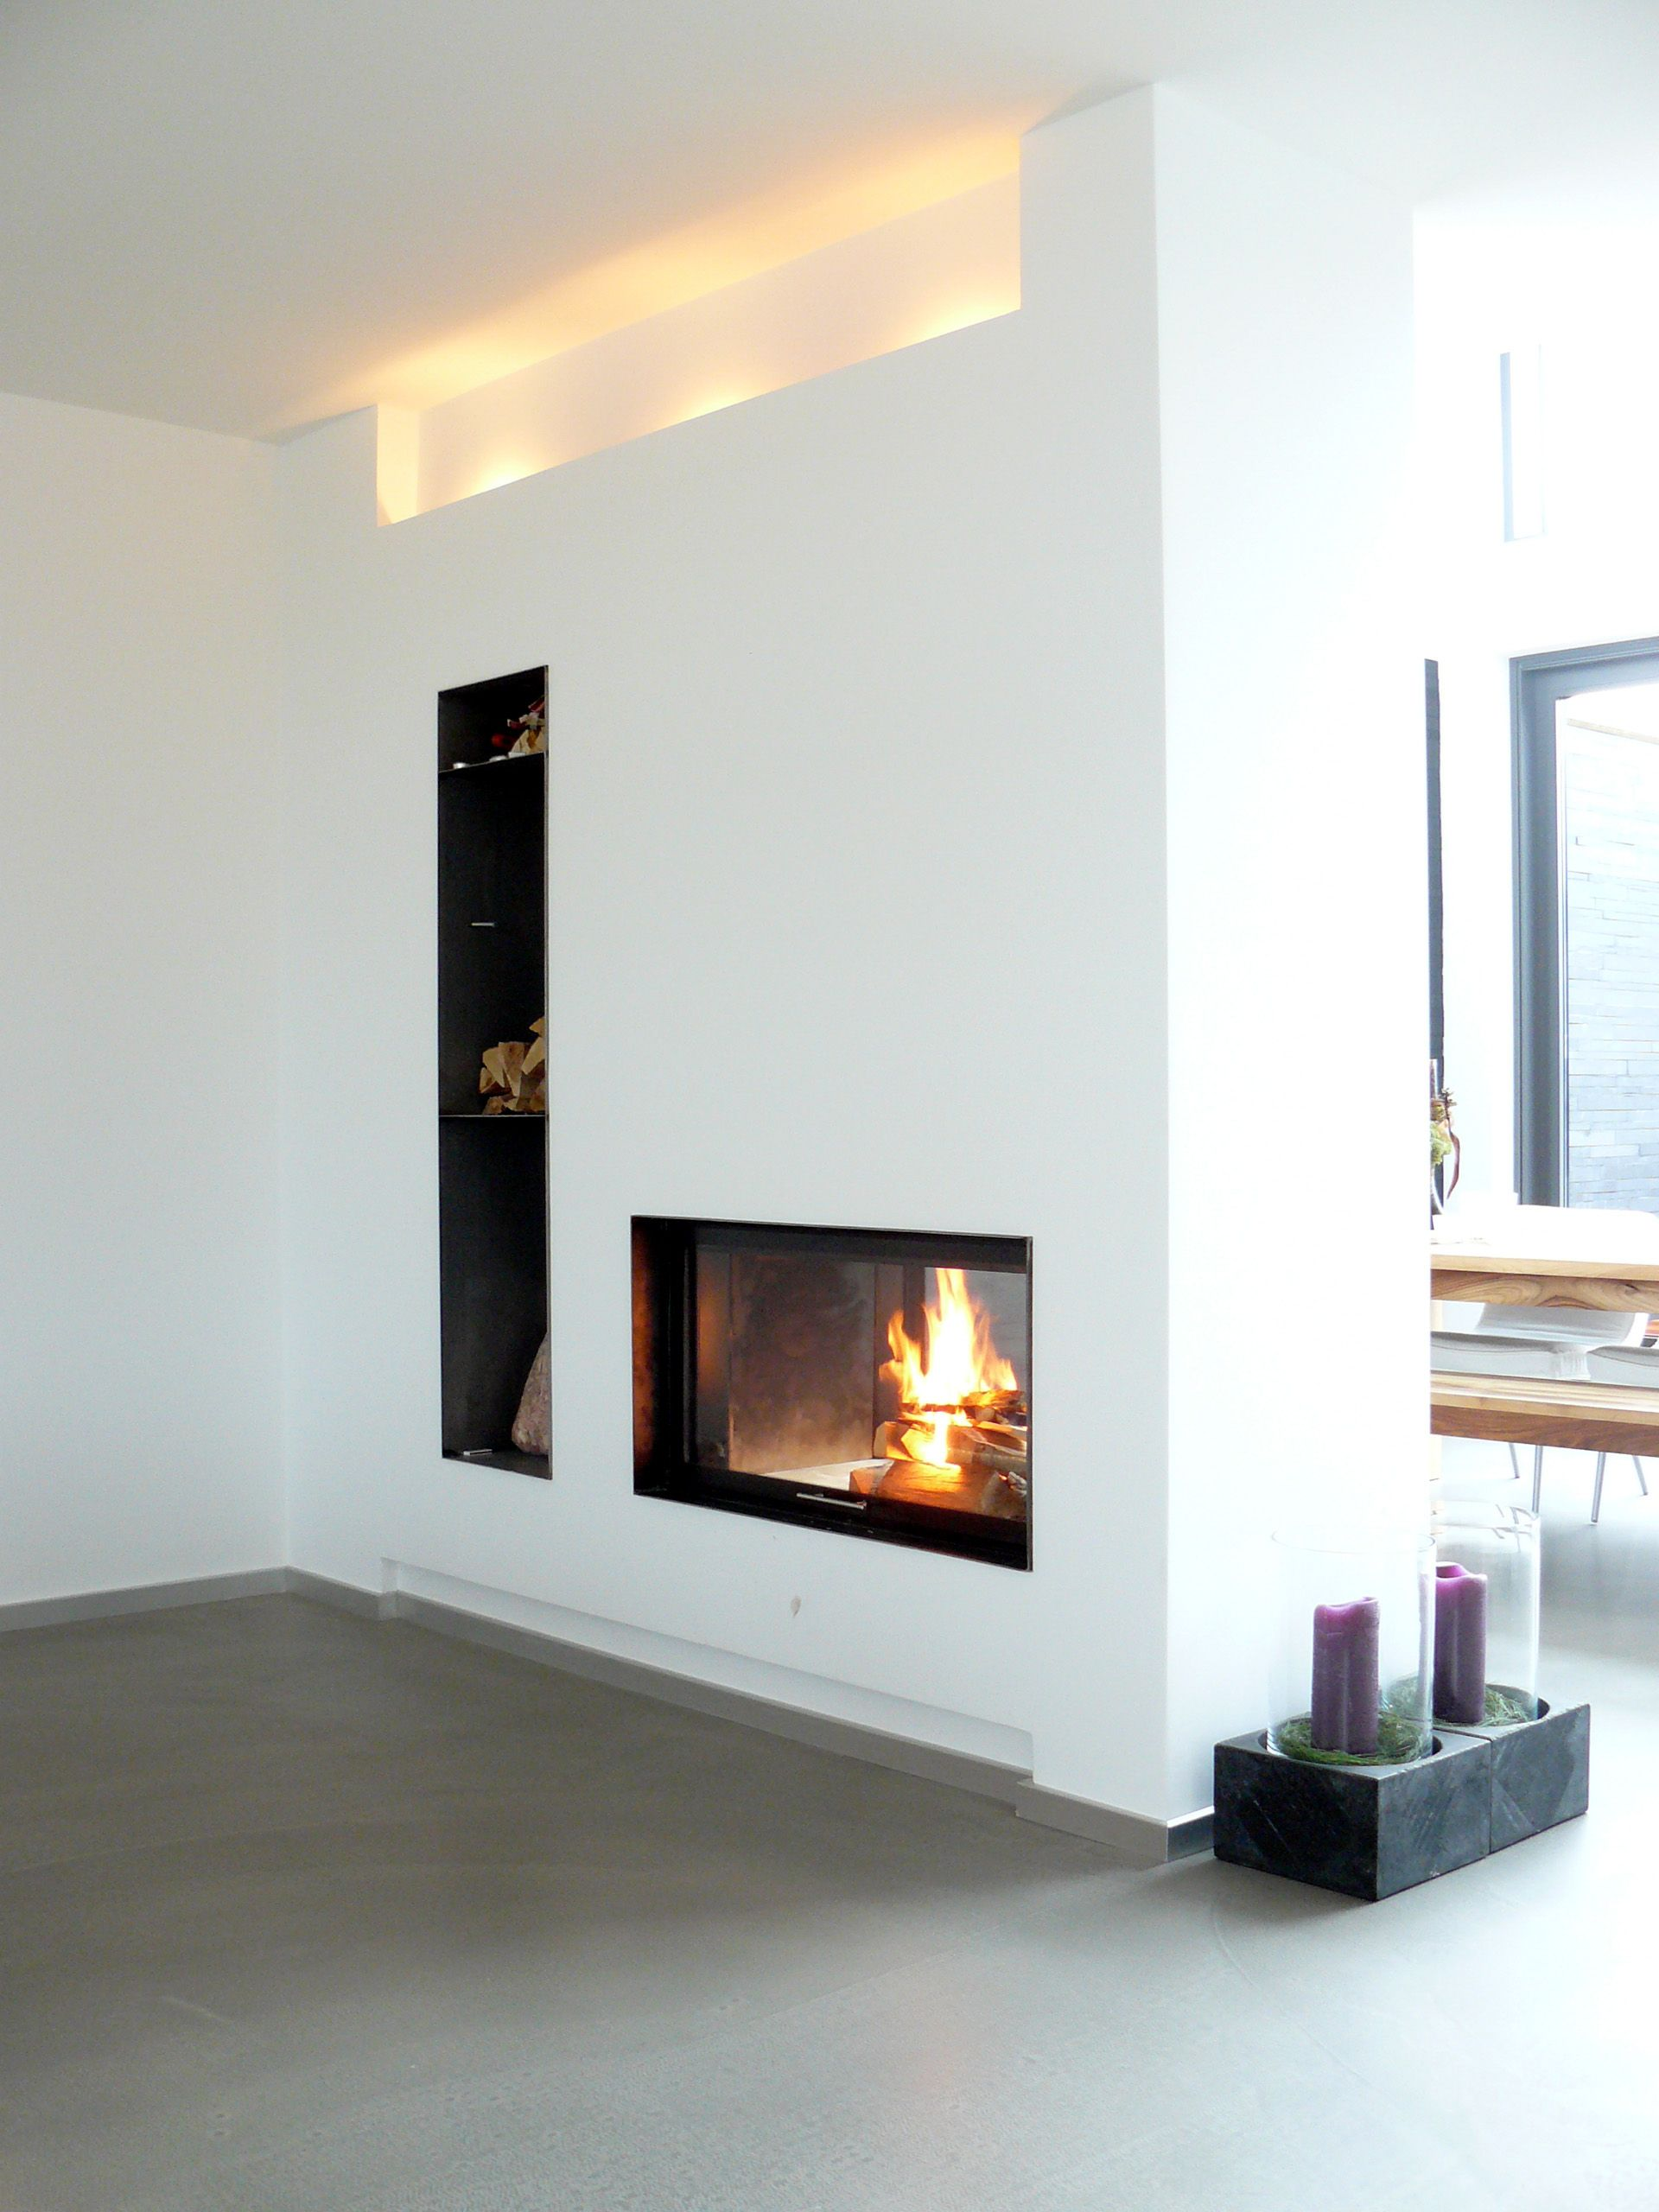 kamin mit tunneleinsatz ofen pinterest fire places interiors and living rooms